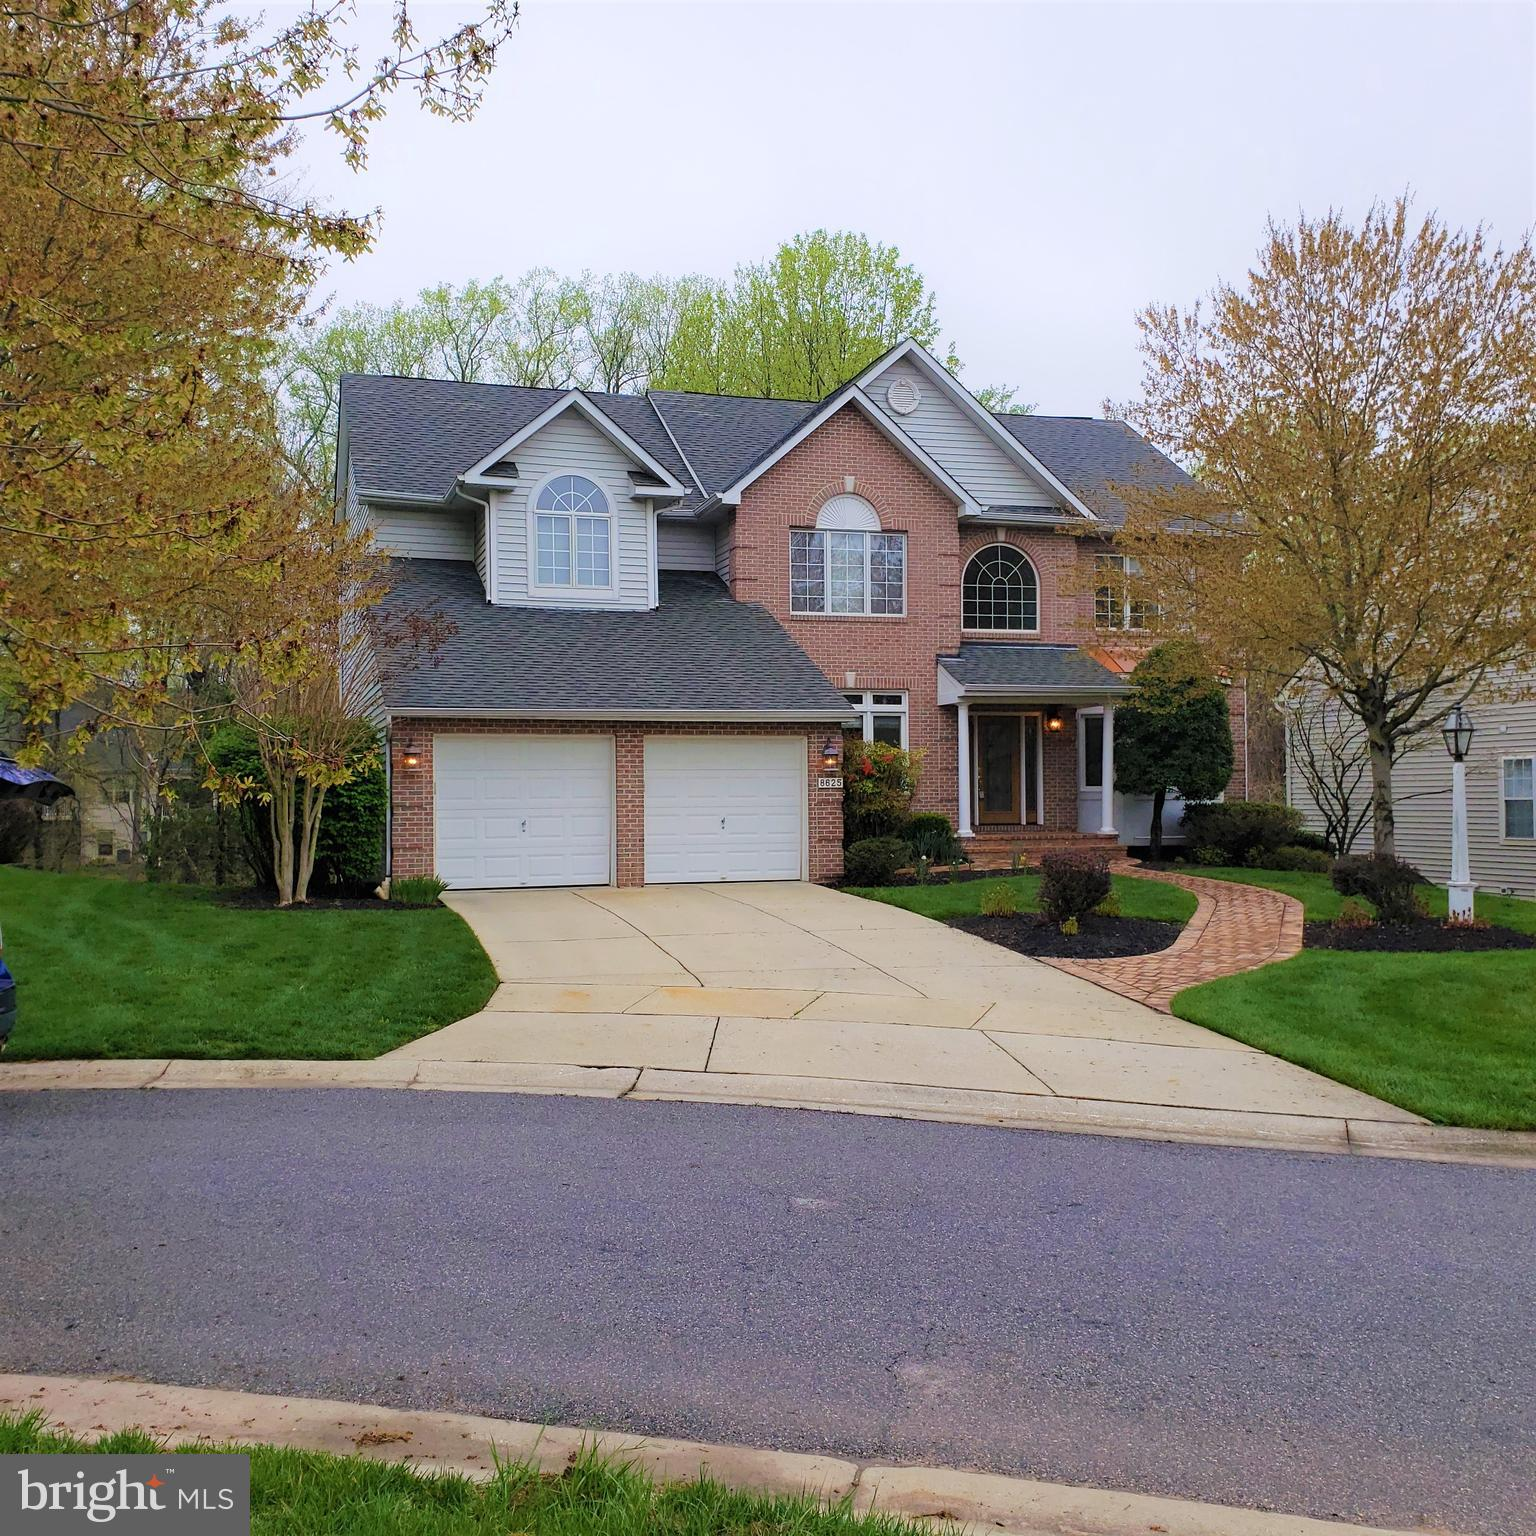 ALL OFFERS TO BE SUBMITTED BY NOON MONDAY, APRIL 19th.  Welcome to 8625 Sunbeam Place in the lovely